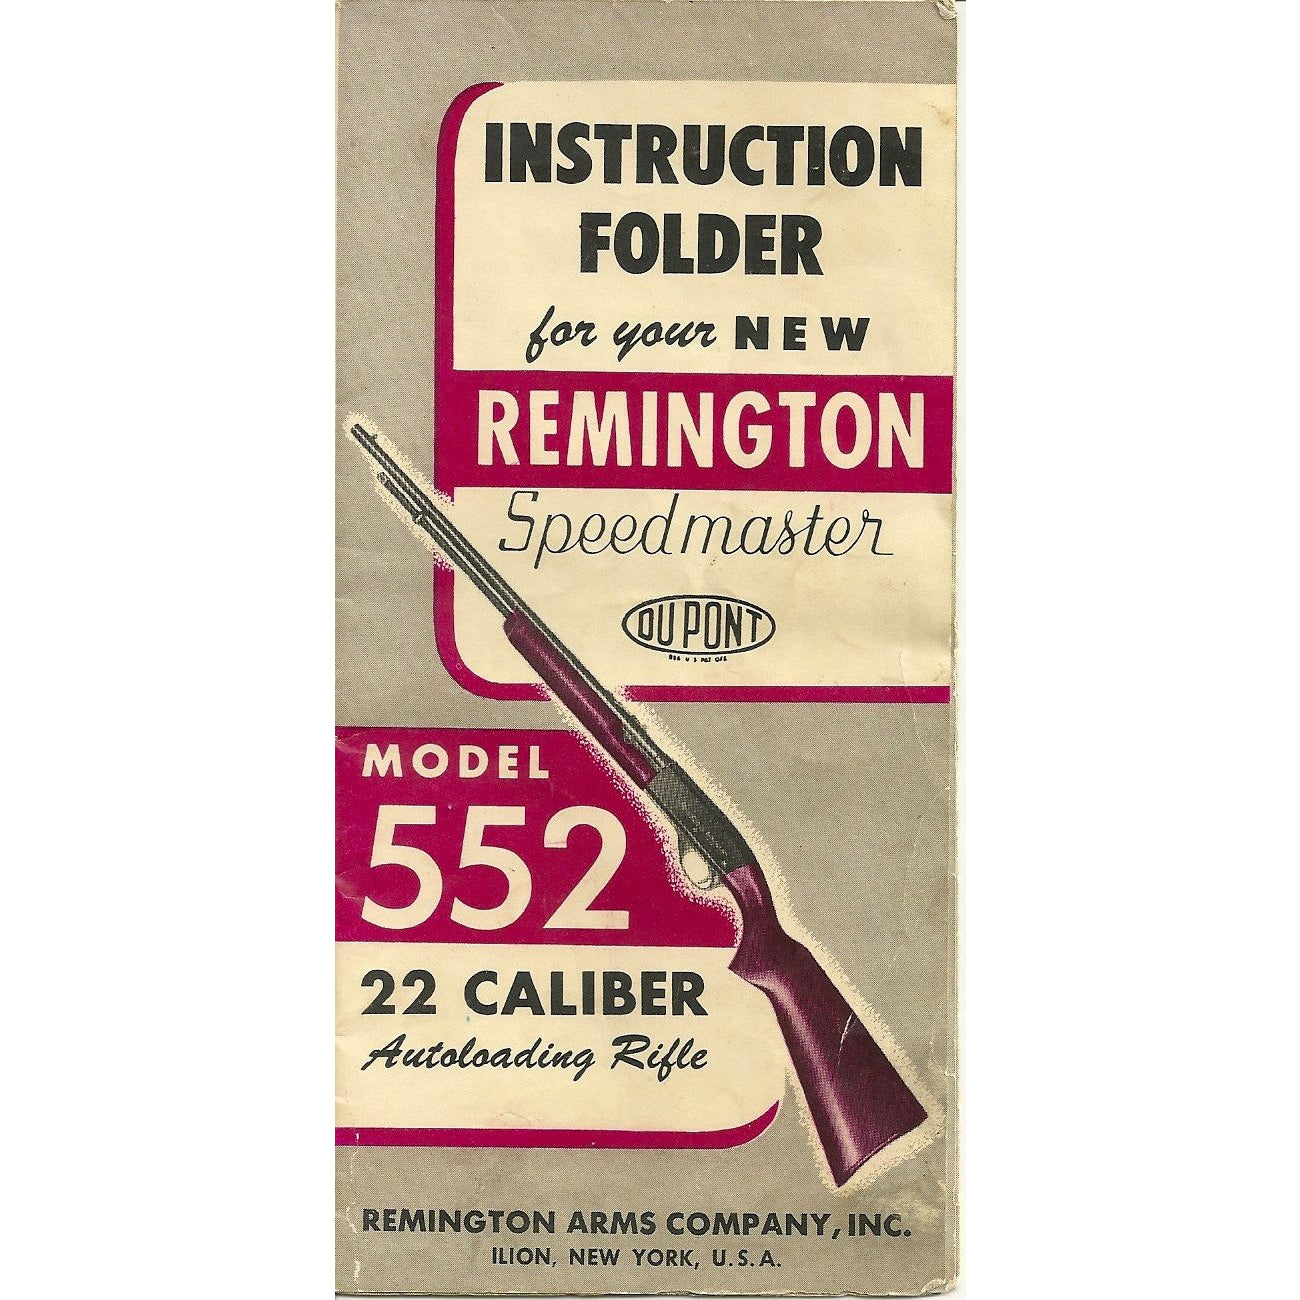 Remington Model 552 22 cal. Semi-auto Rifle Manual,Firearm Manuals- Canada Brass